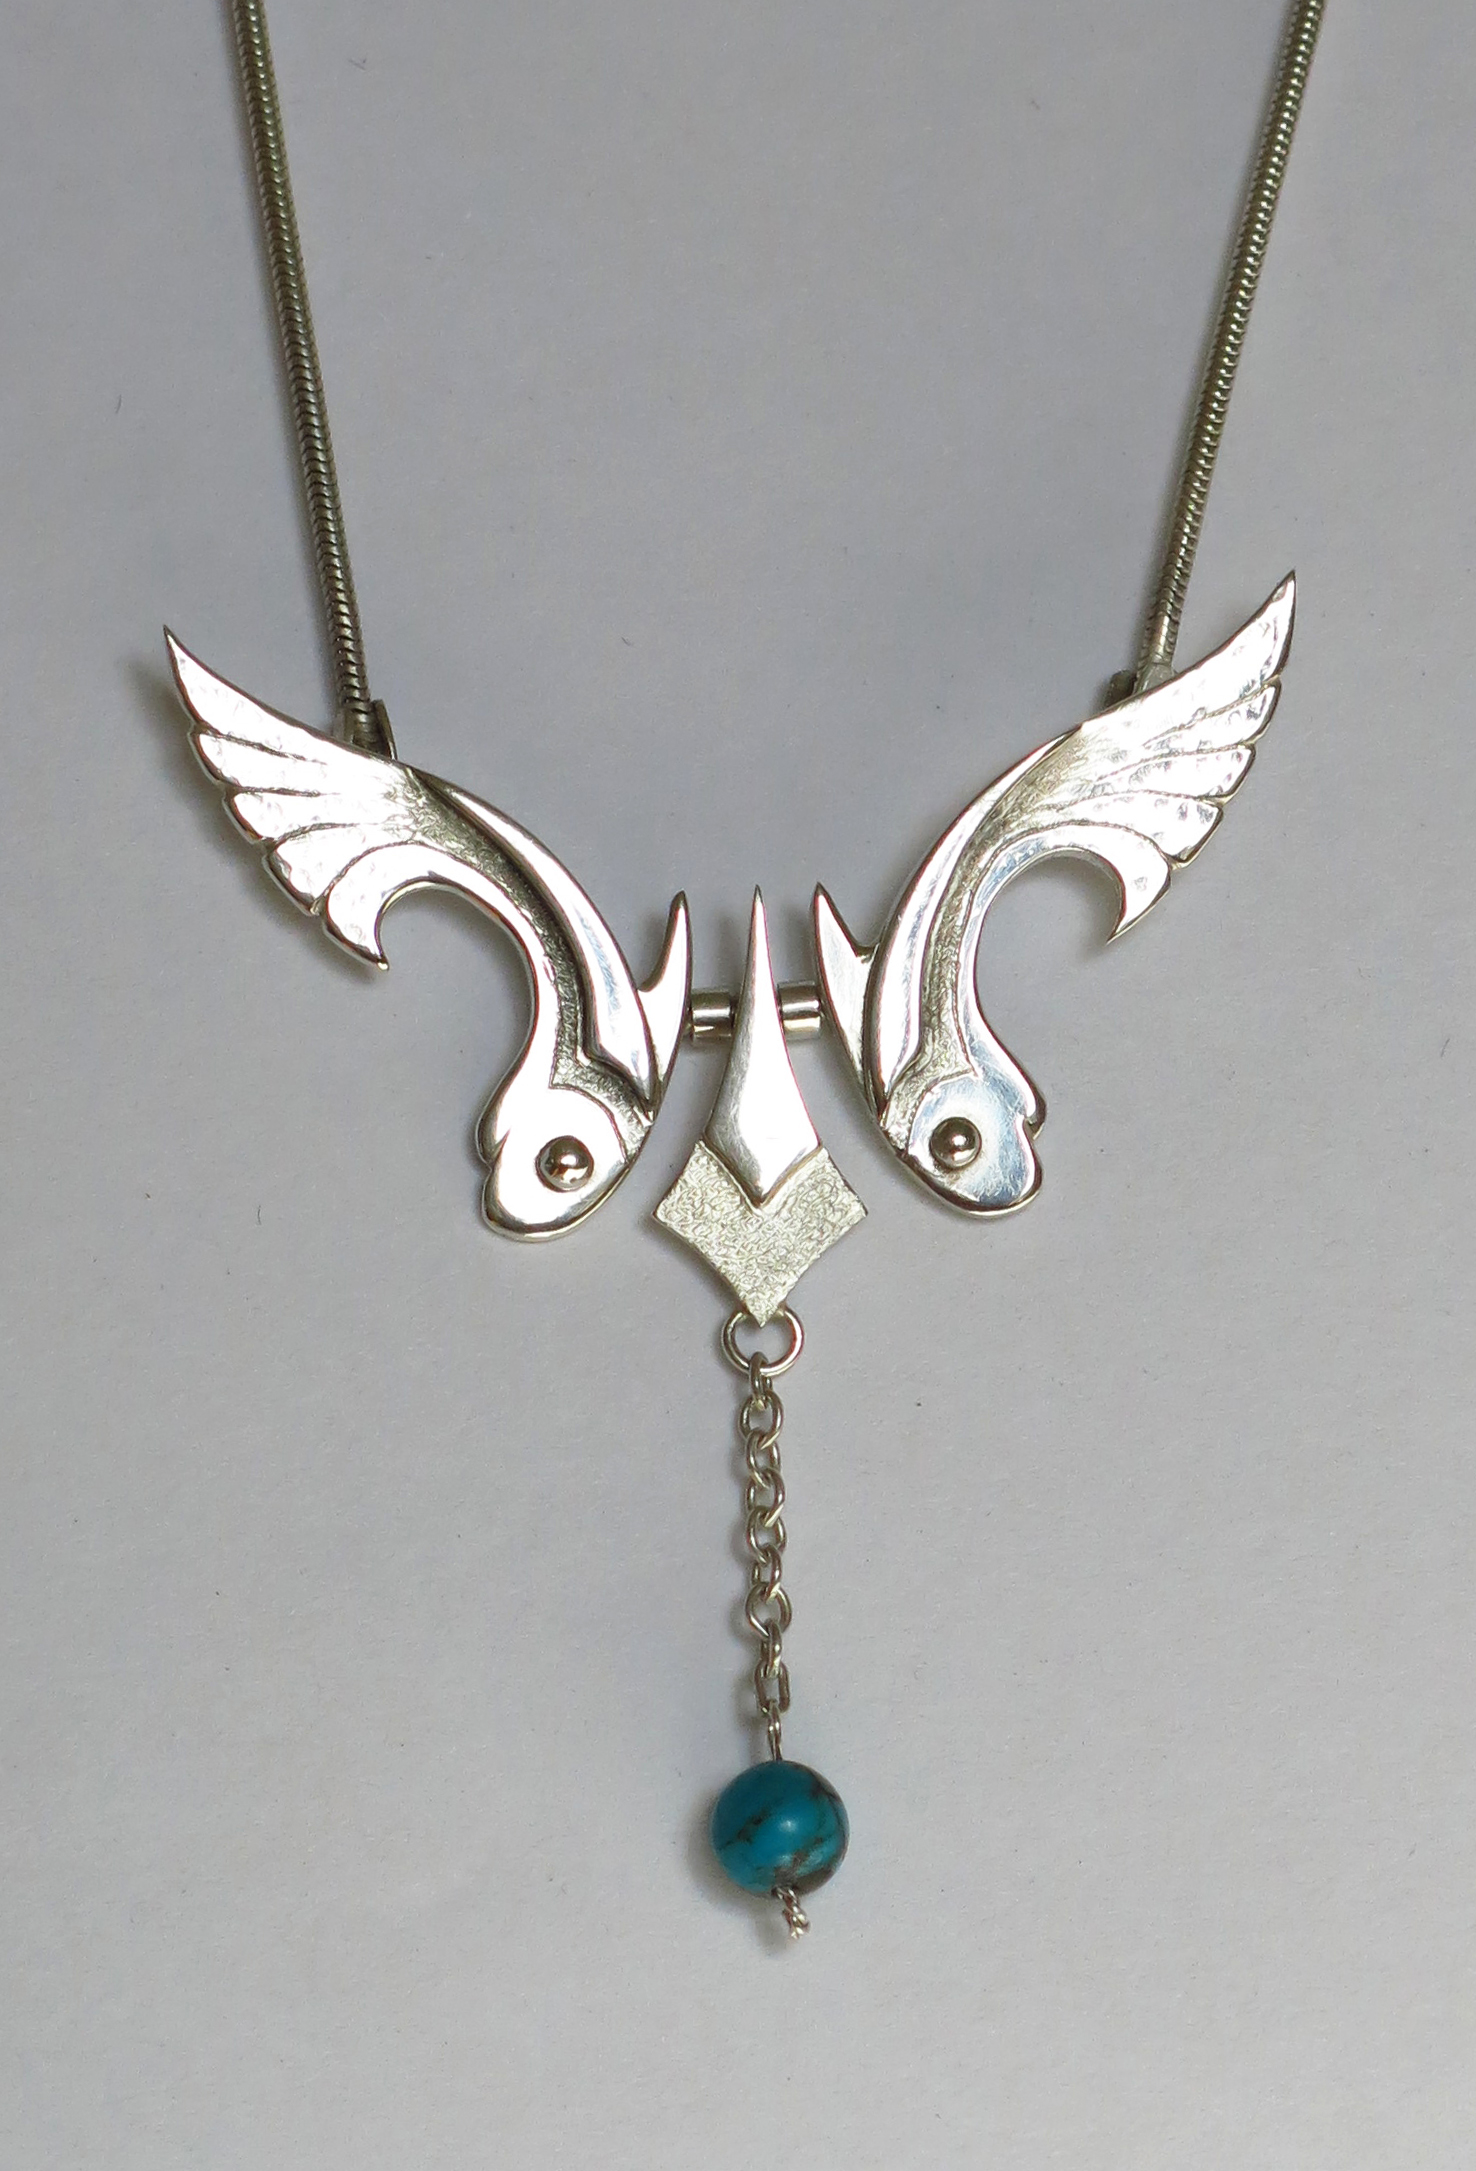 Silver fish with turquoise